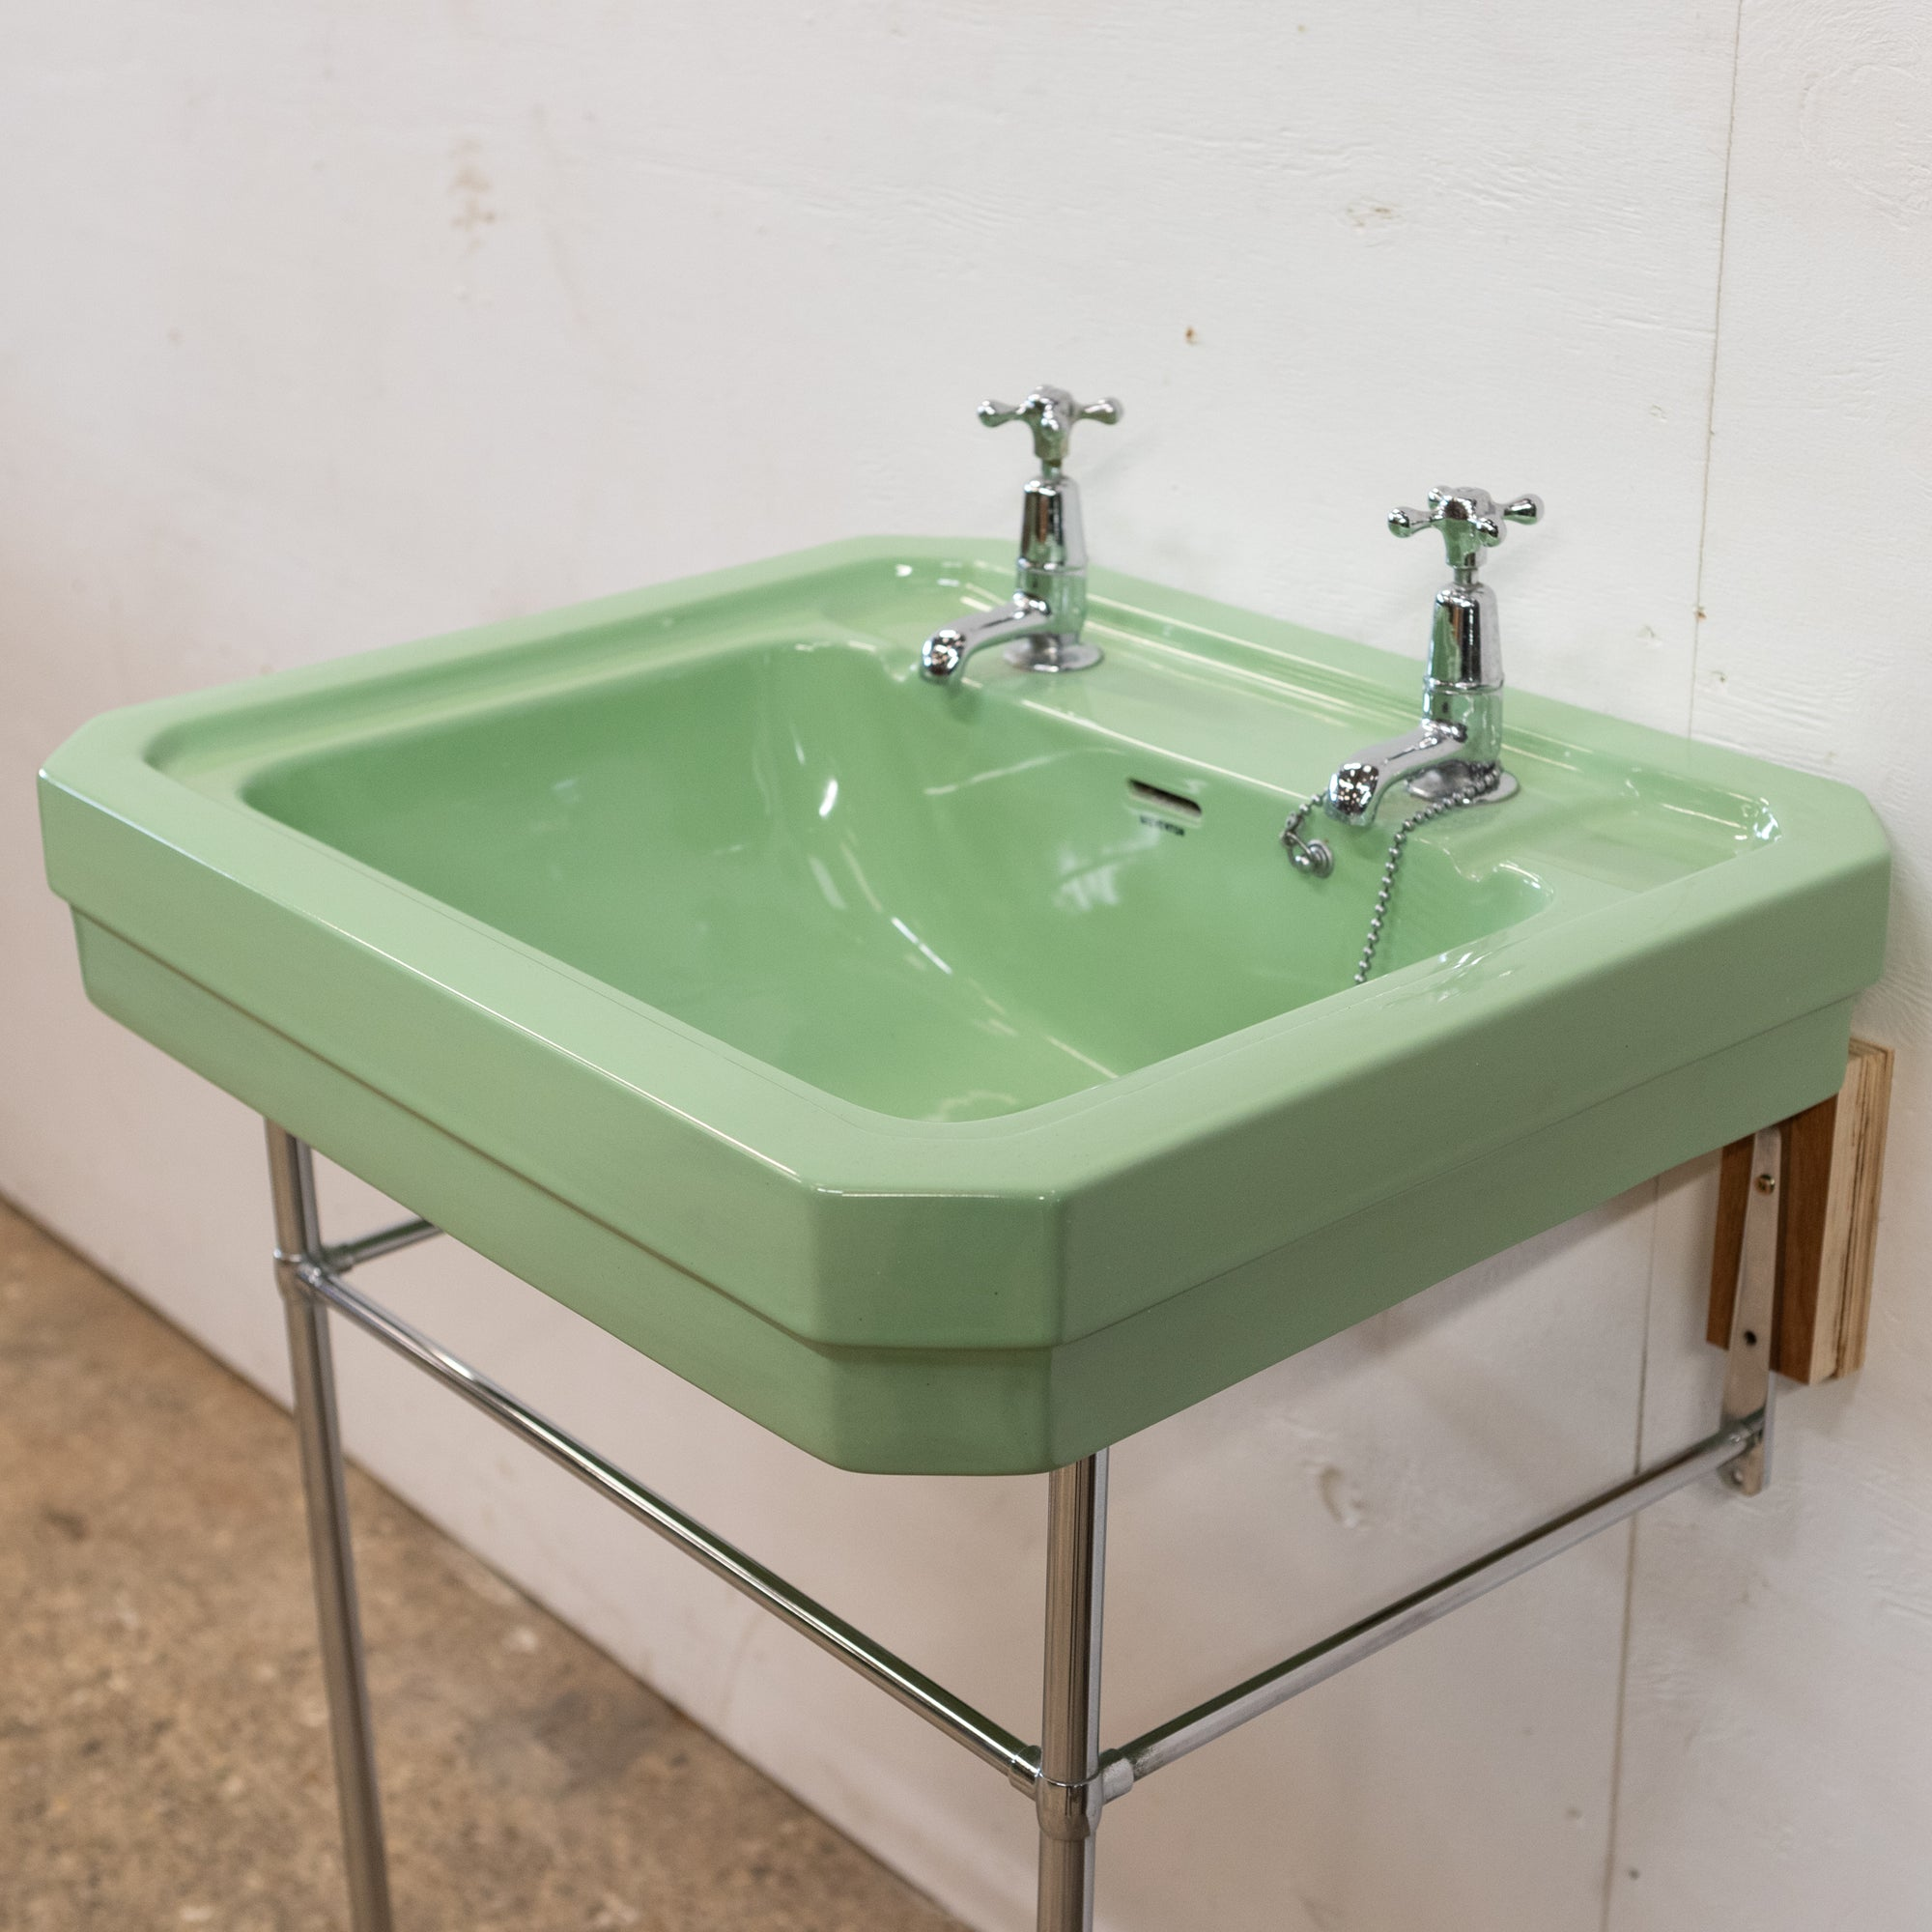 Reclaimed Avocado Green Sink With Optional Legs | The Architectural Forum